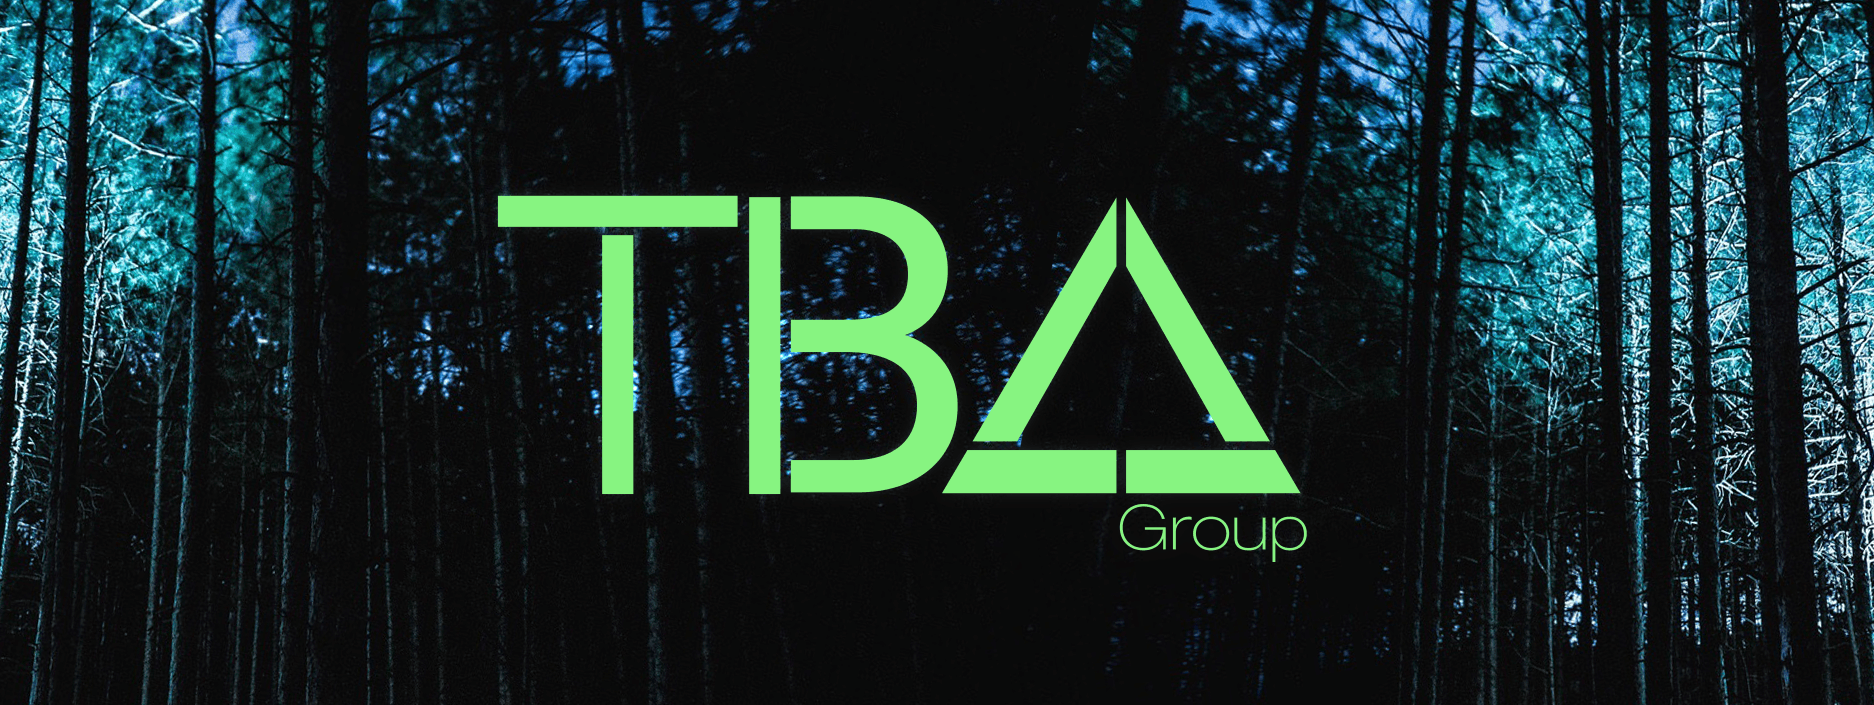 TBA Group